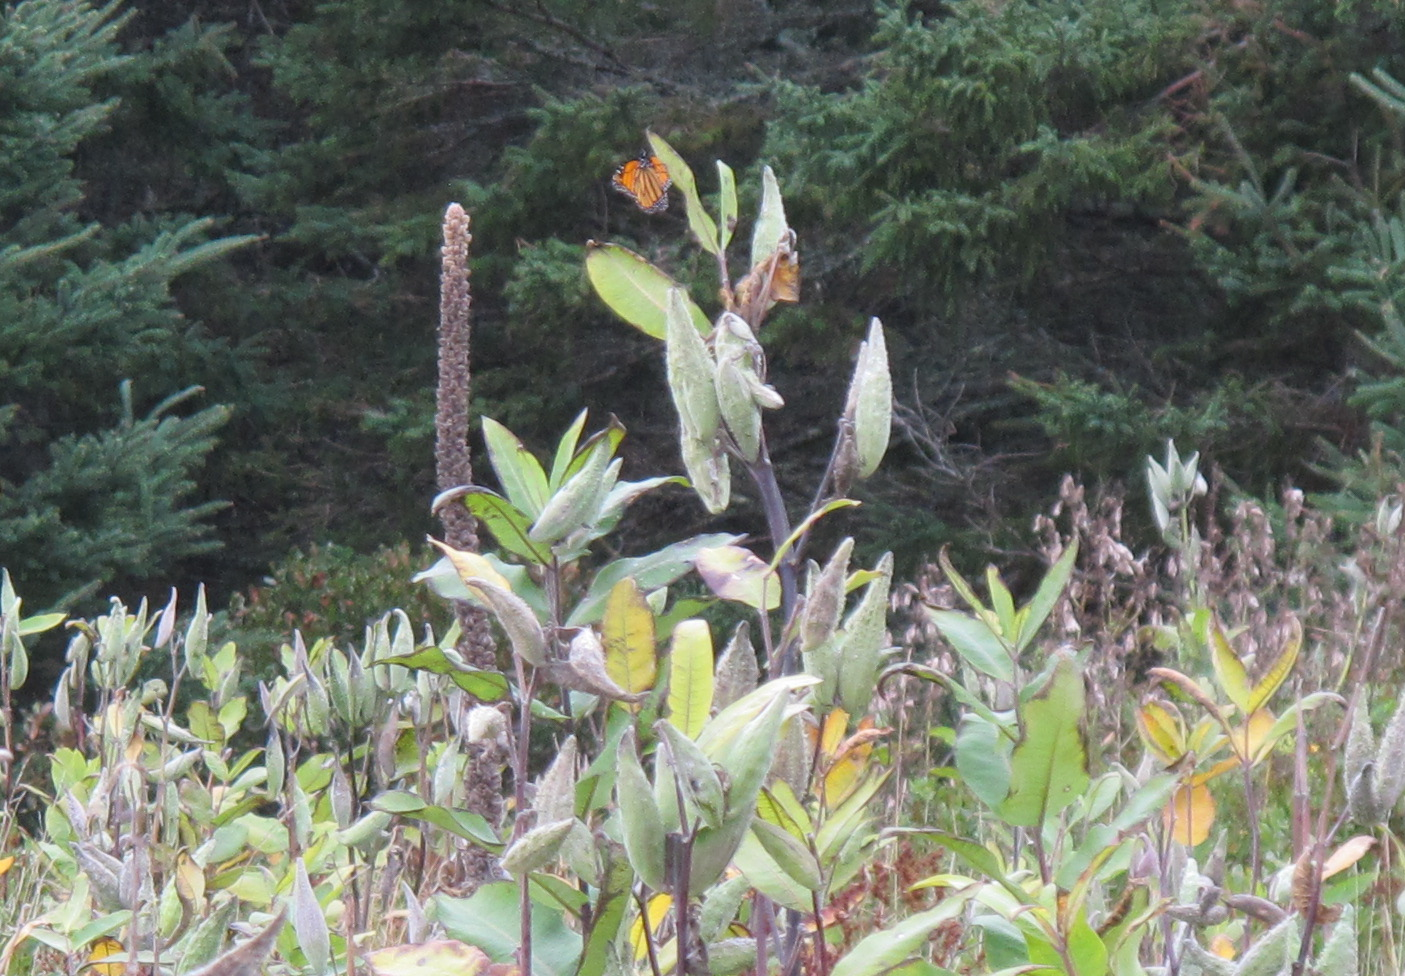 A monarch on the island of milkweed.